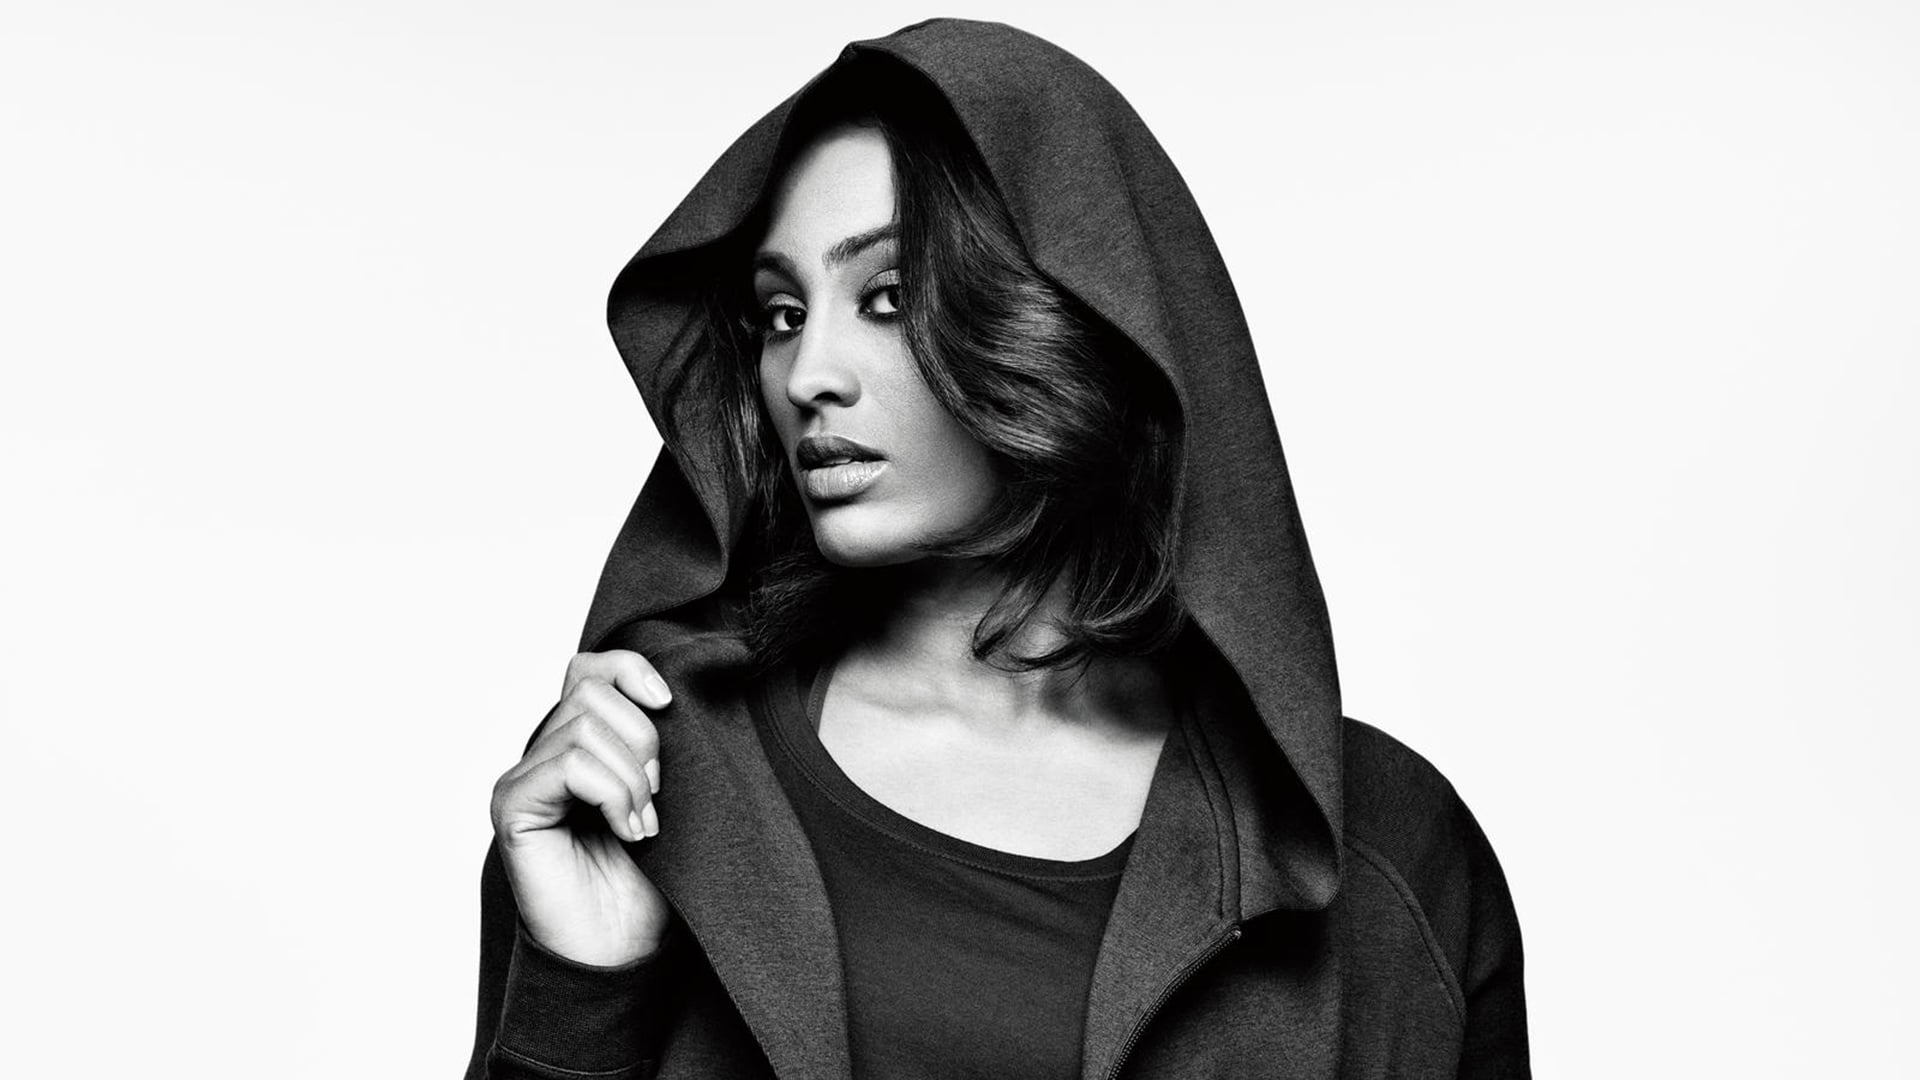 Amazing bw Skylar Diggins pictures